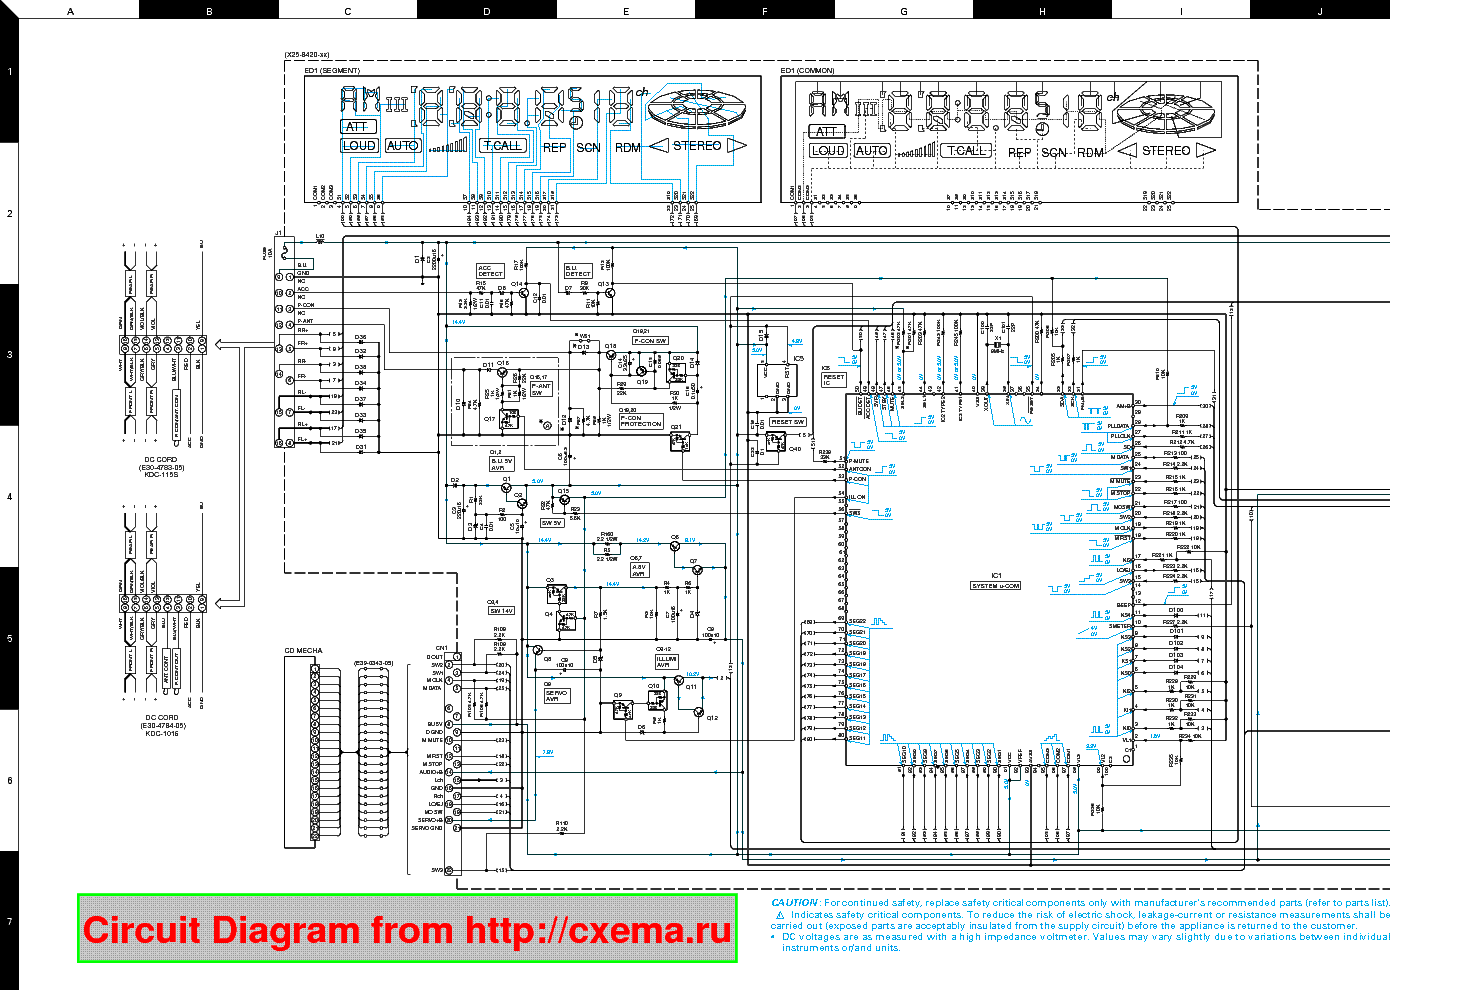 Dnx7100 Wiring Diagram. creative kenwood dnx7100 wiring diagram kenwood  ddx7015. dnx7100 wiring diagram. kenwood dnx7100 wiring harness navigation  system with. premium capacitor wiring diagram symbol component. kenwood  dnx7100 installation manual page 10.2002-acura-tl-radio.info